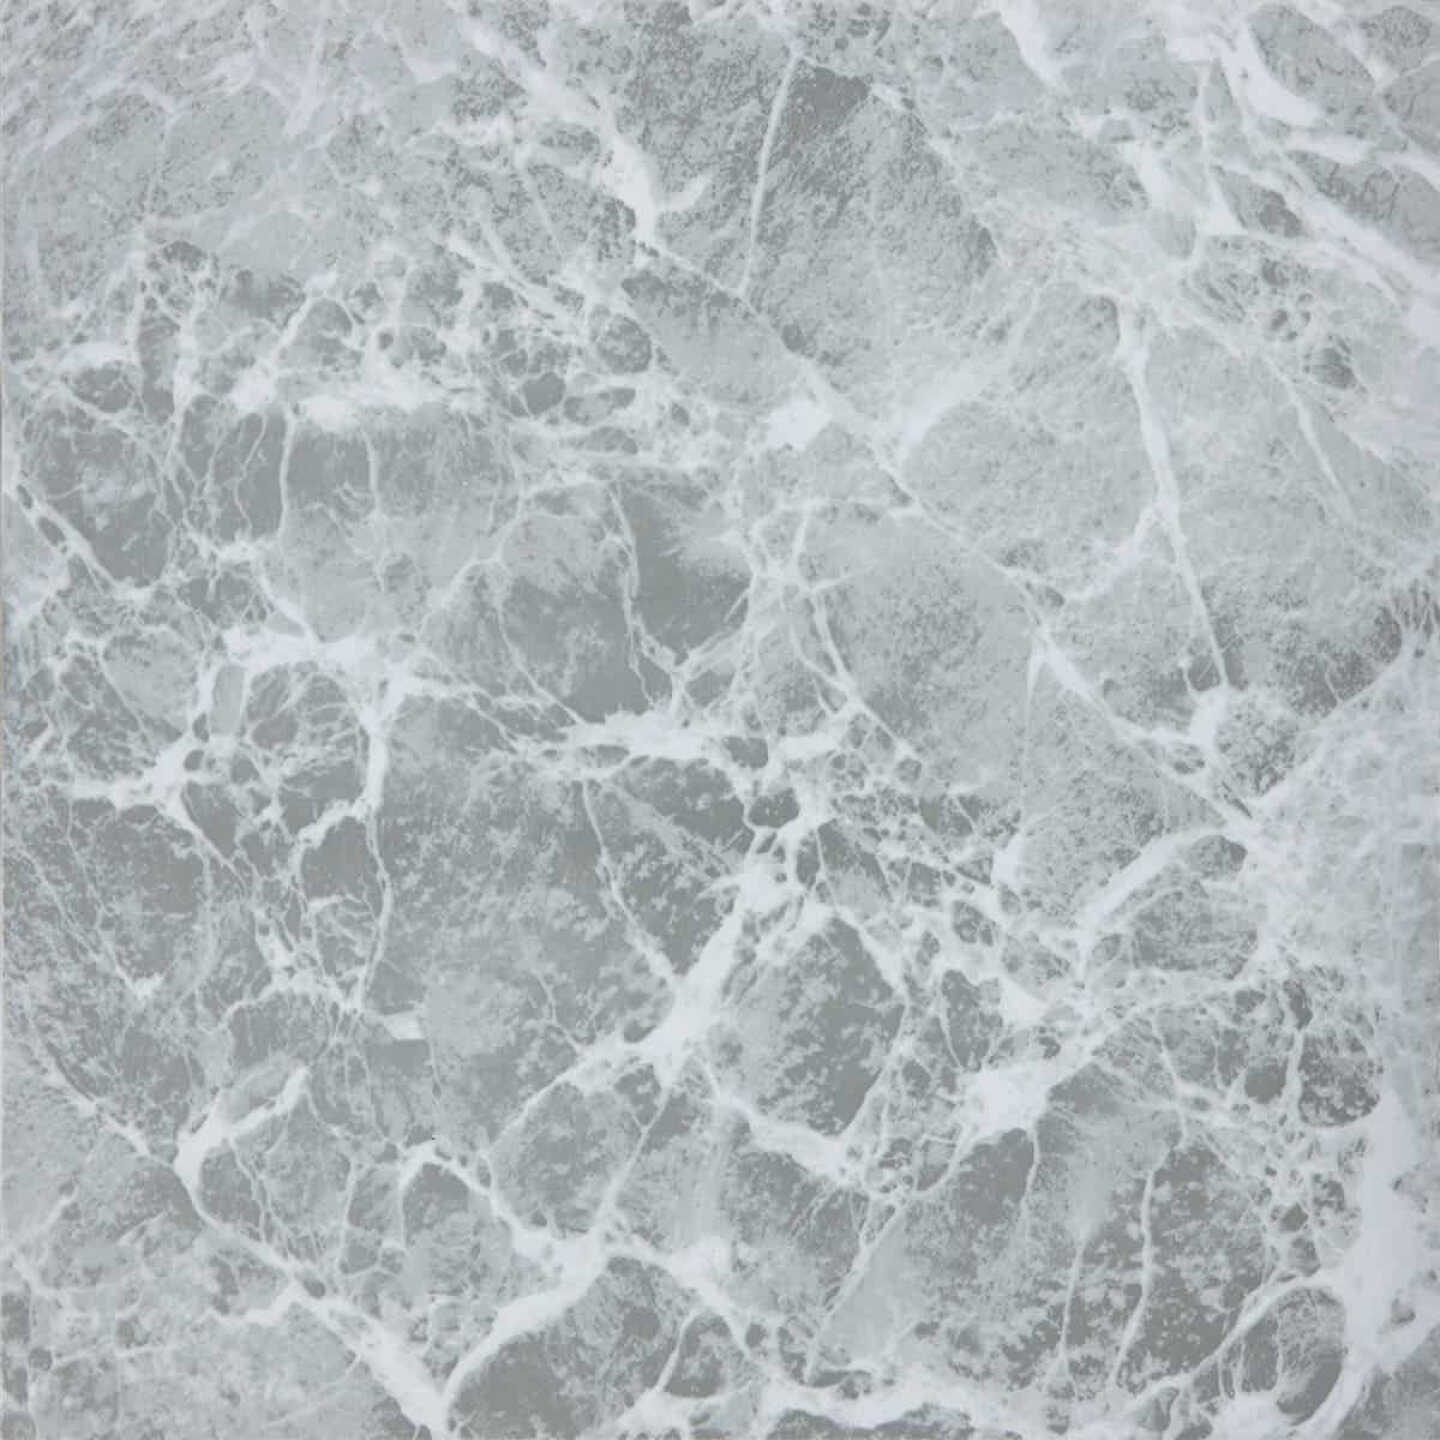 Home Impressions Gray Marble 12 In. x 12 In. Vinyl Floor Tile (45 Sq. Ft./Box) Image 1